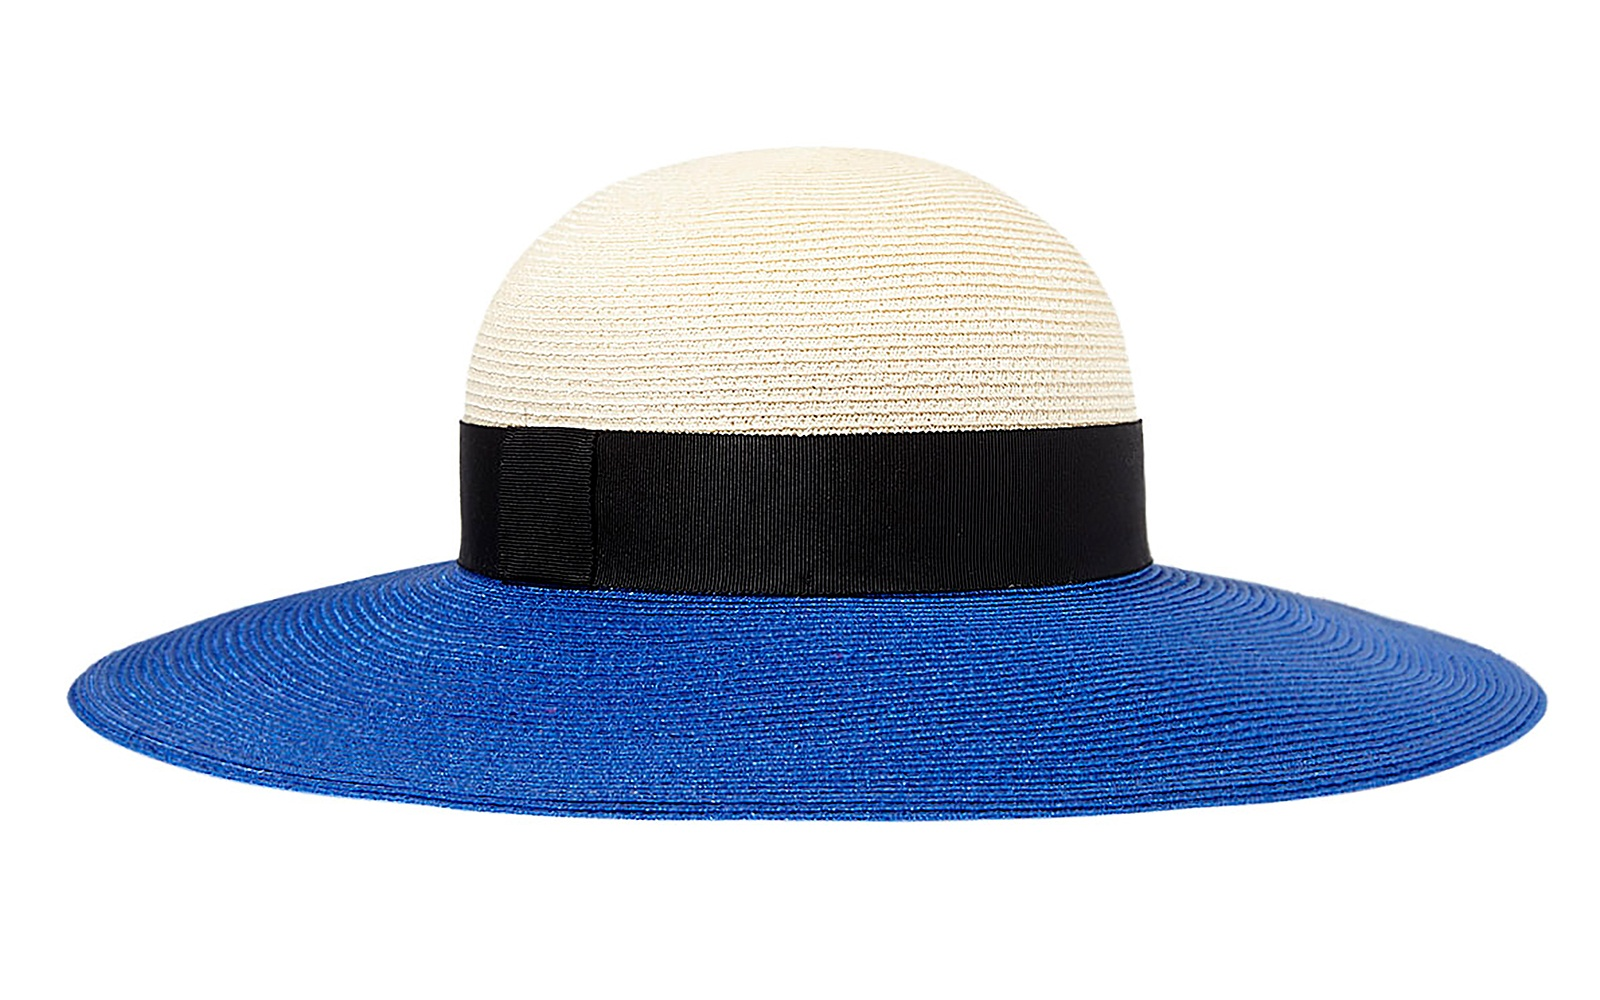 Best For: Bright Brims